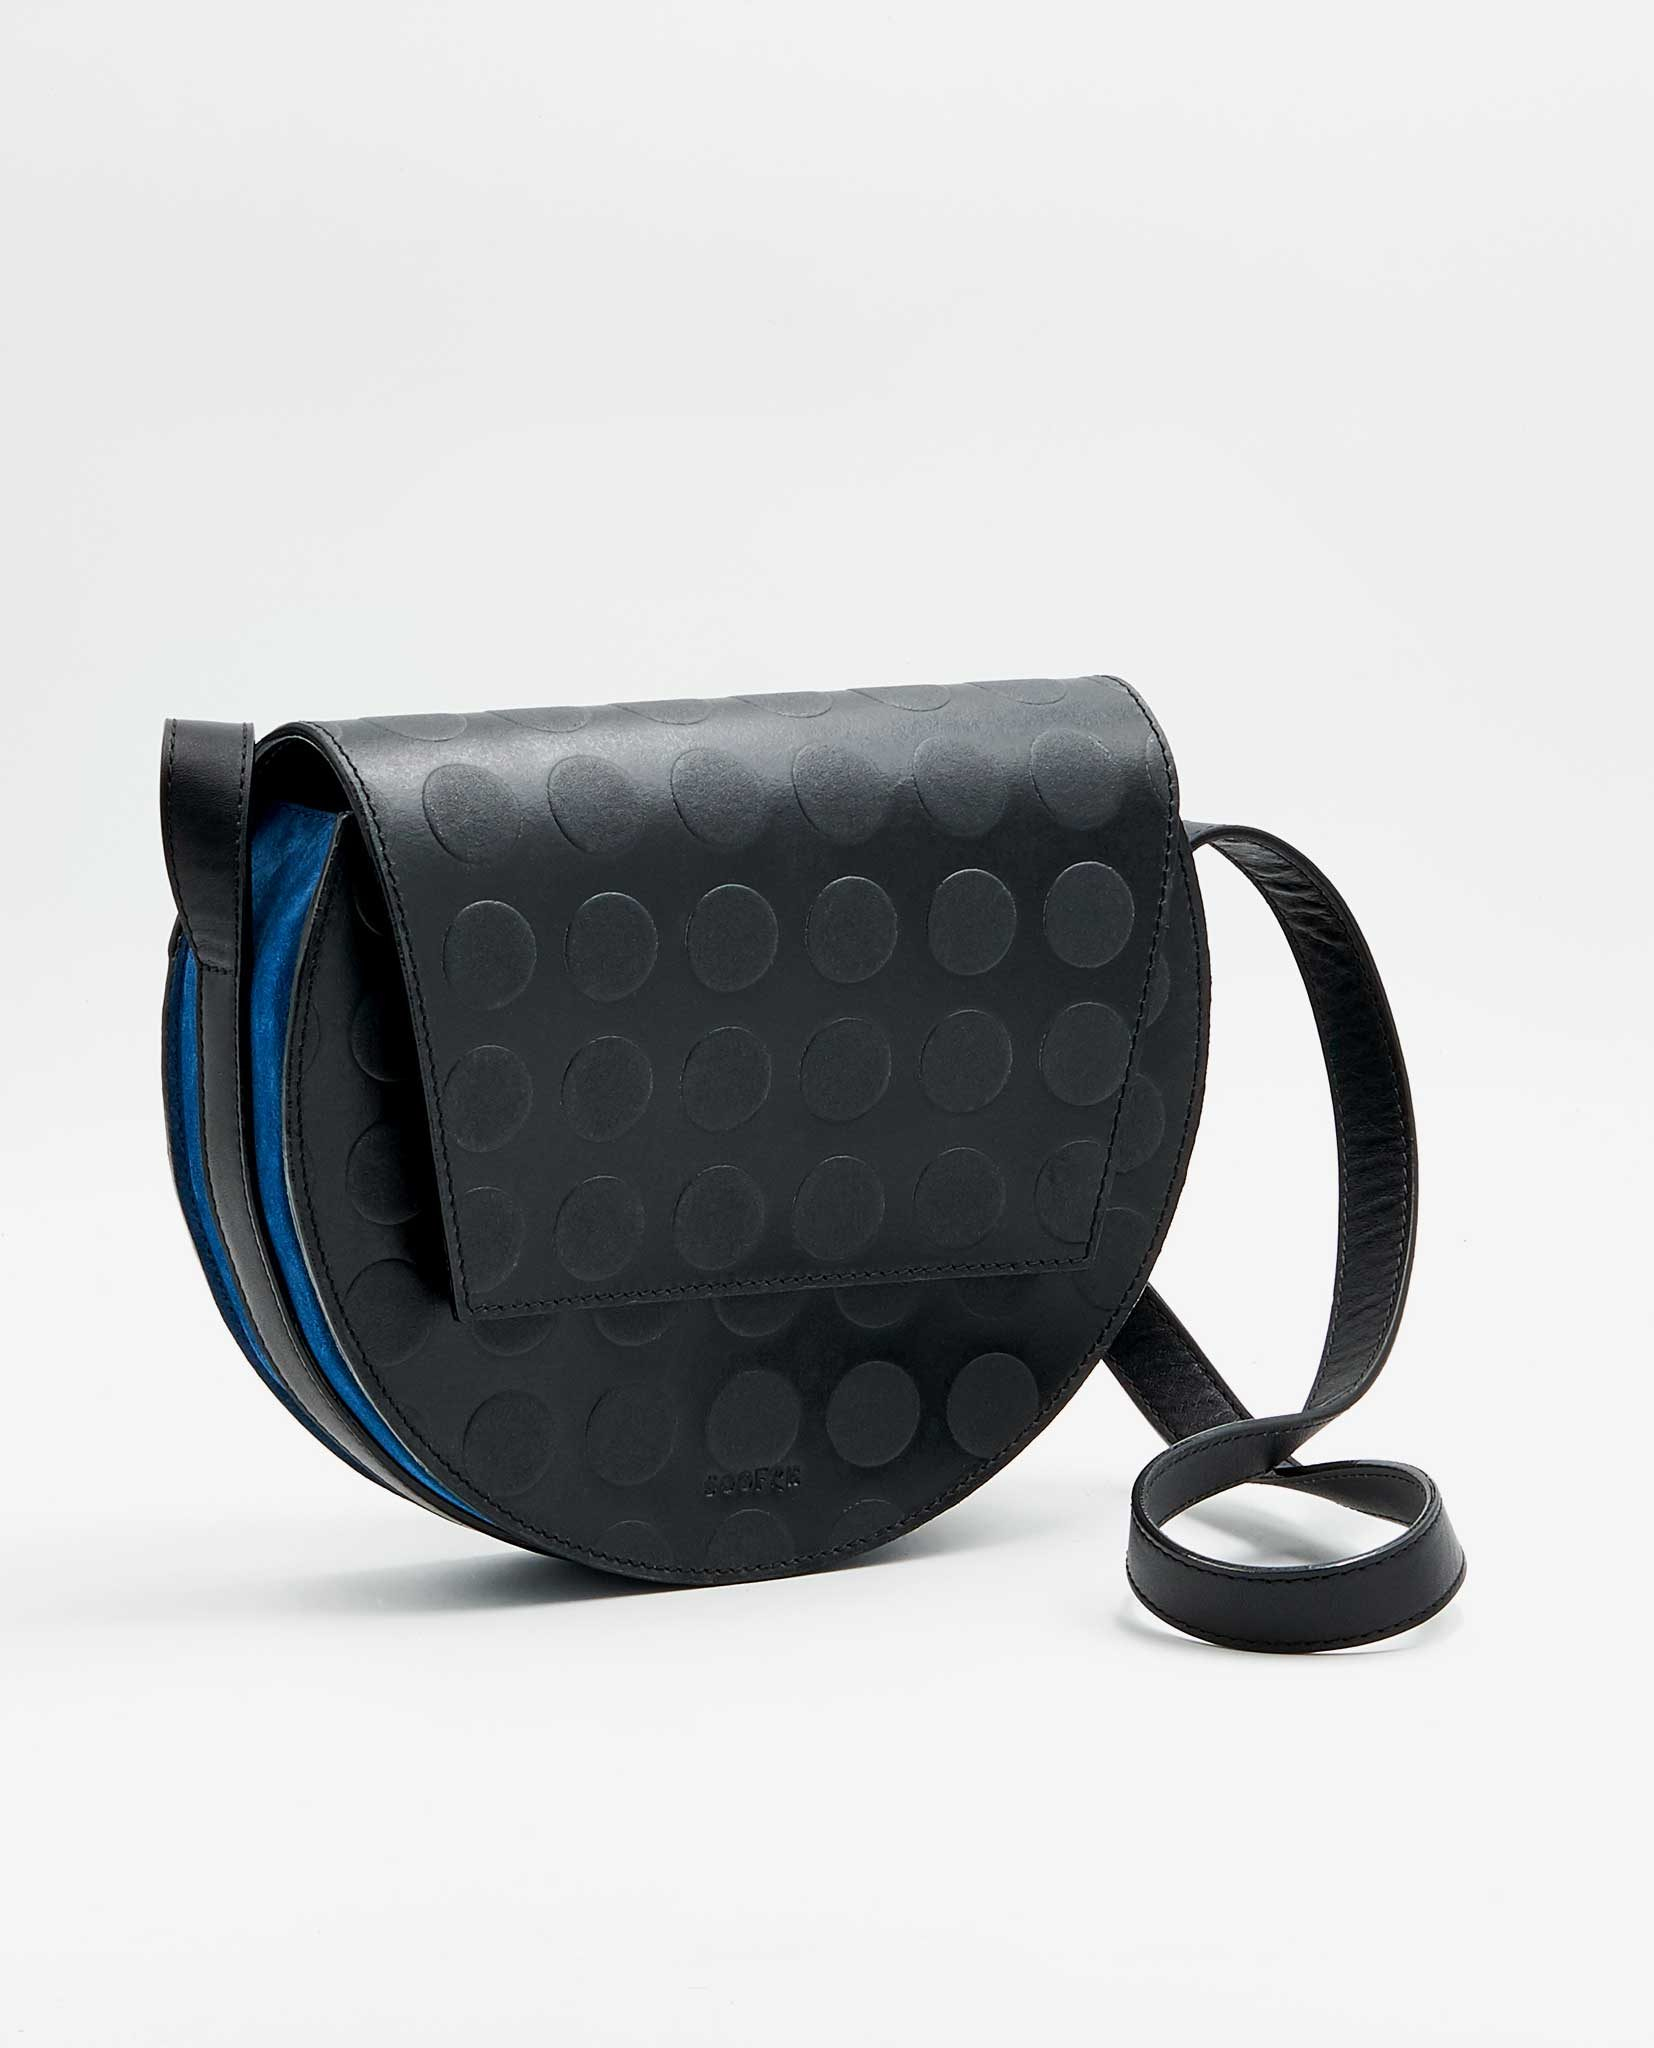 SOOFRE Berlin unique Crossbody Purse dotted black sapphire blue